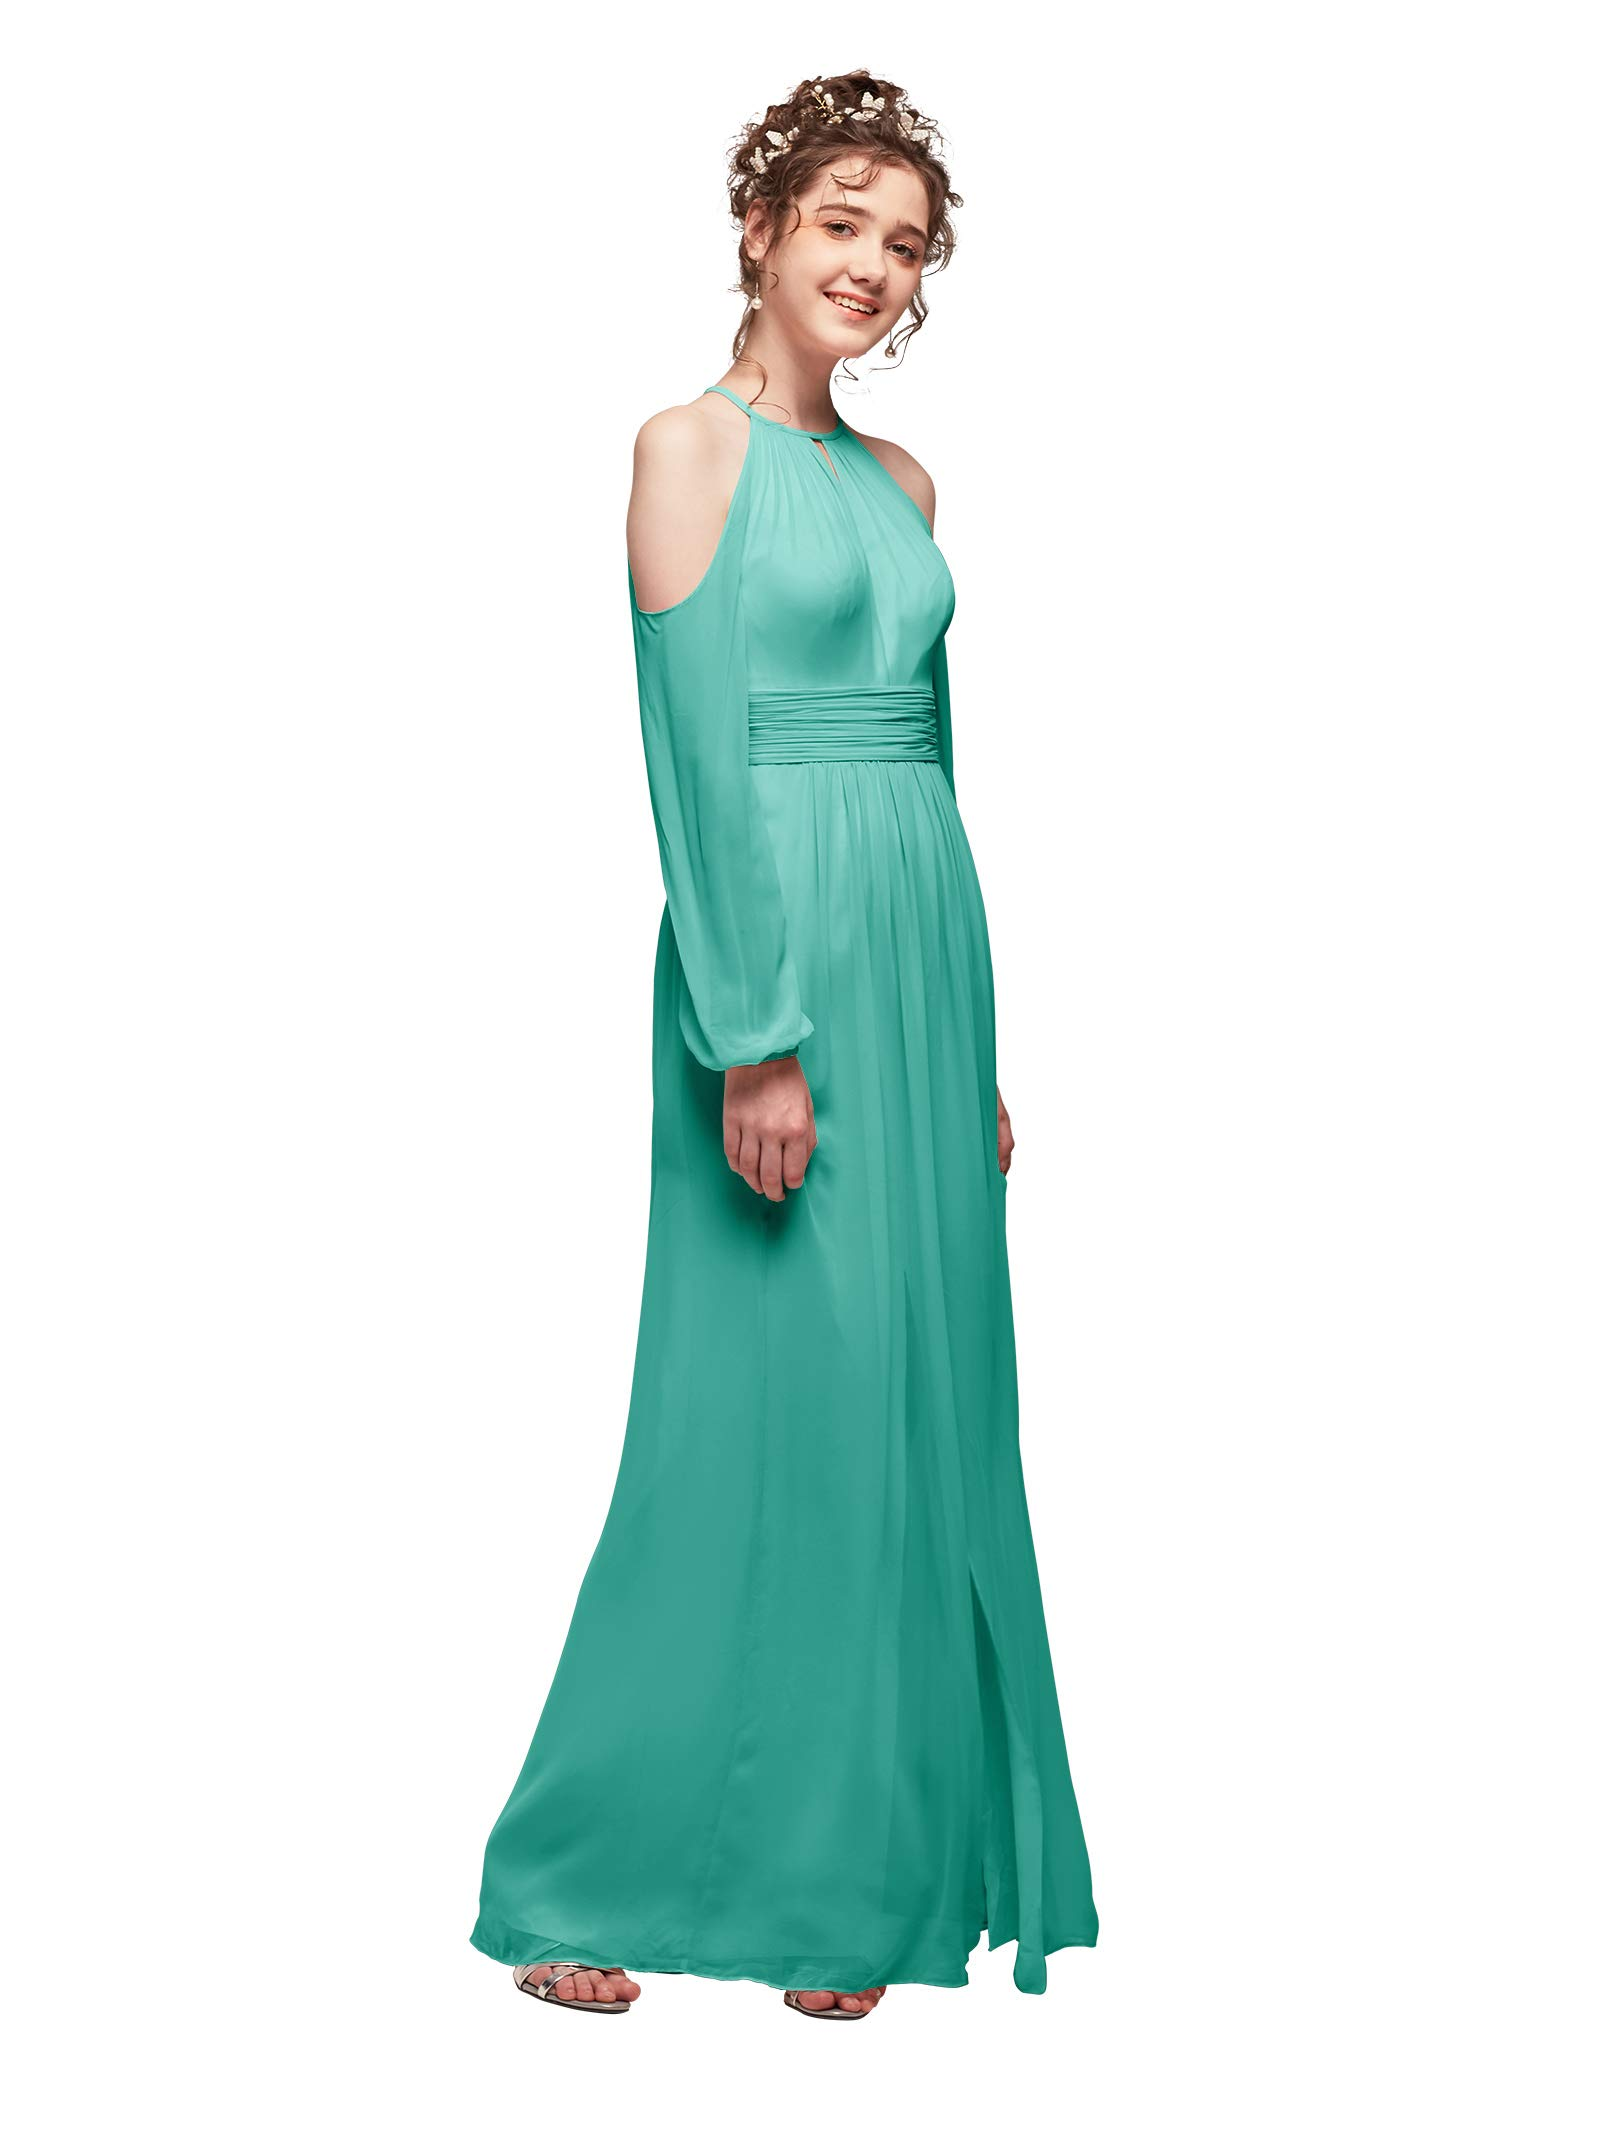 AW Chiffon Long Bridesmaid Dresses with Sleeves Split Prom Dresses Plus  Size Mother of The Bride Dress Tiffany, US22